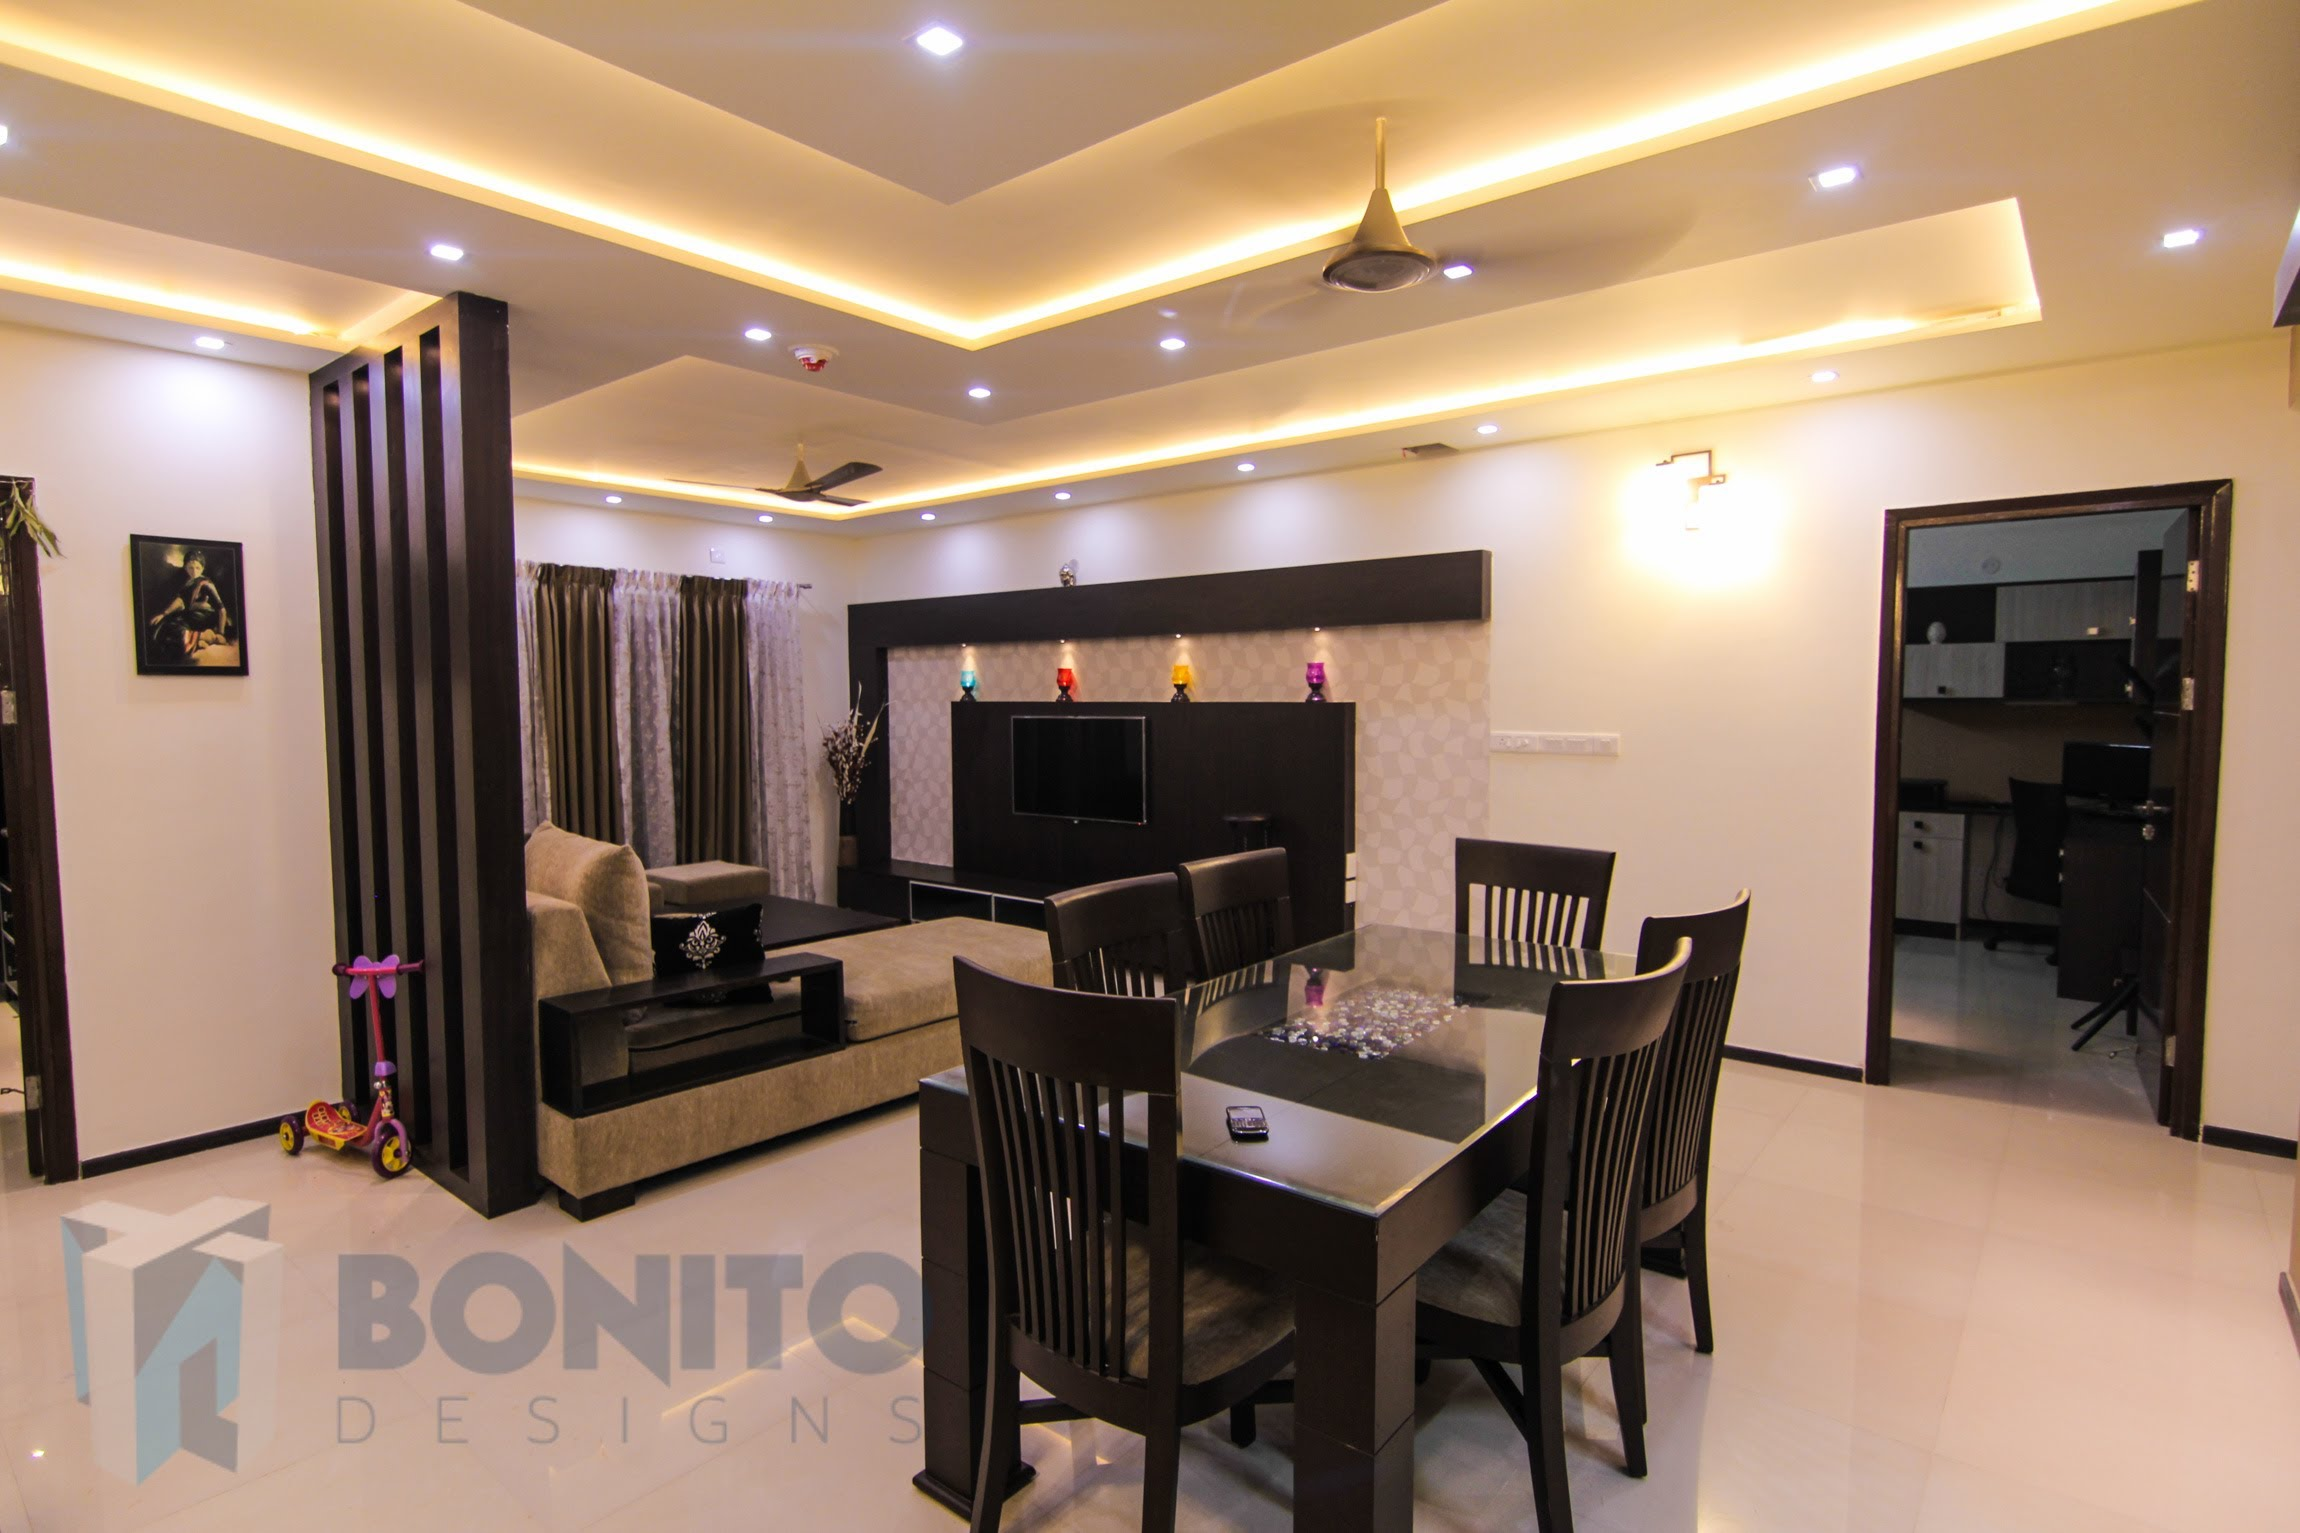 New mrs parvathi - interiors [final update] - full home interior decoration - yyubmvl